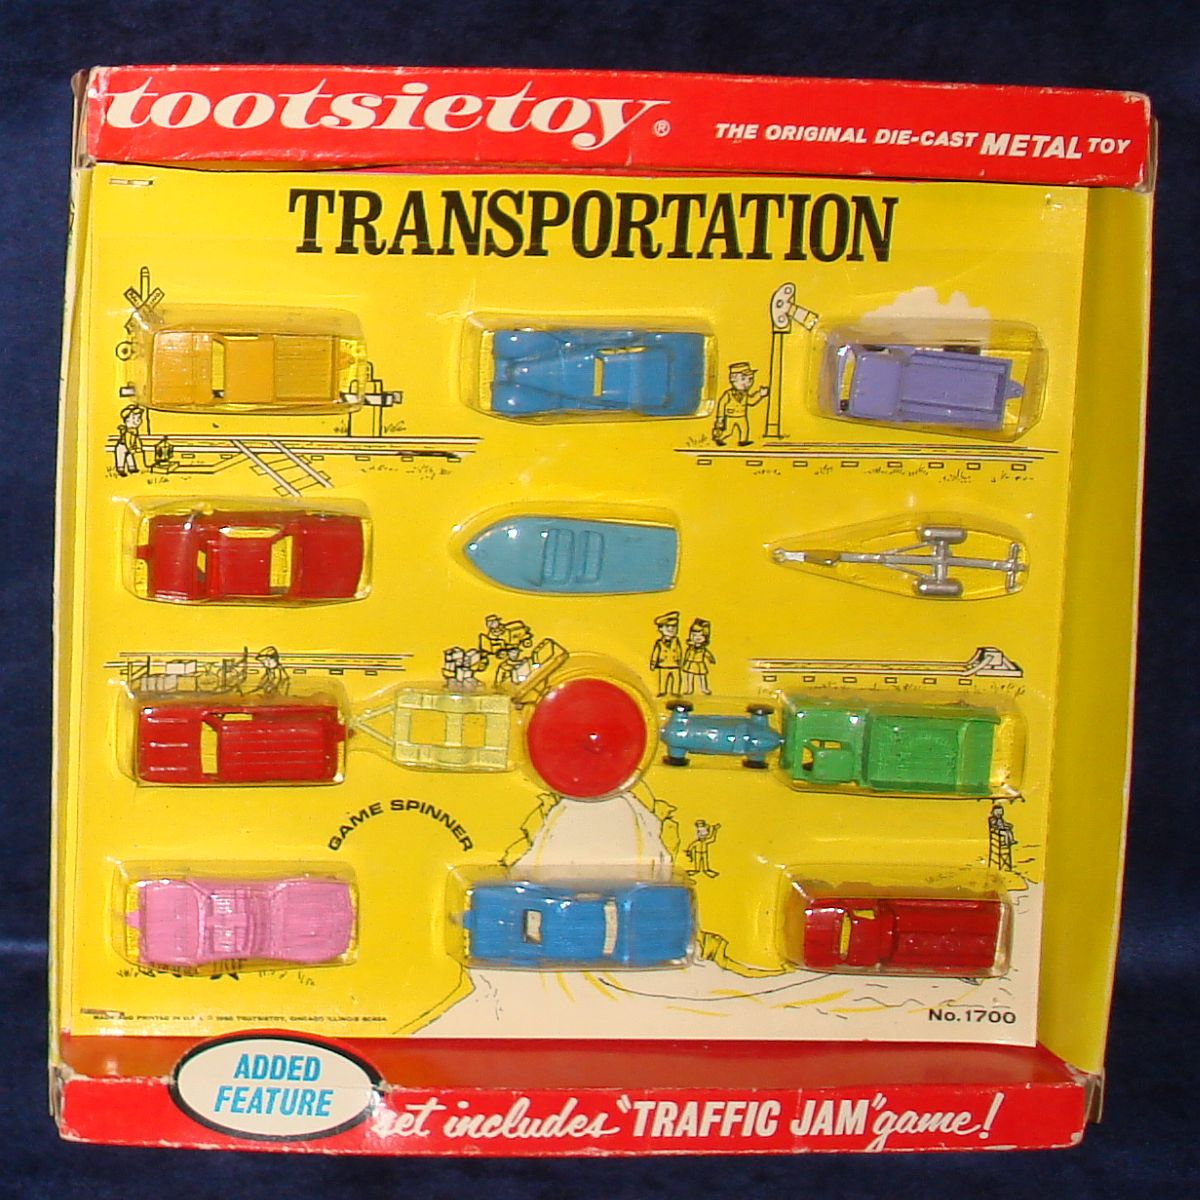 Vintage Tootsietoy Diecast Metal Transportation Vehicles Set 1700 Cars Trucks Boats